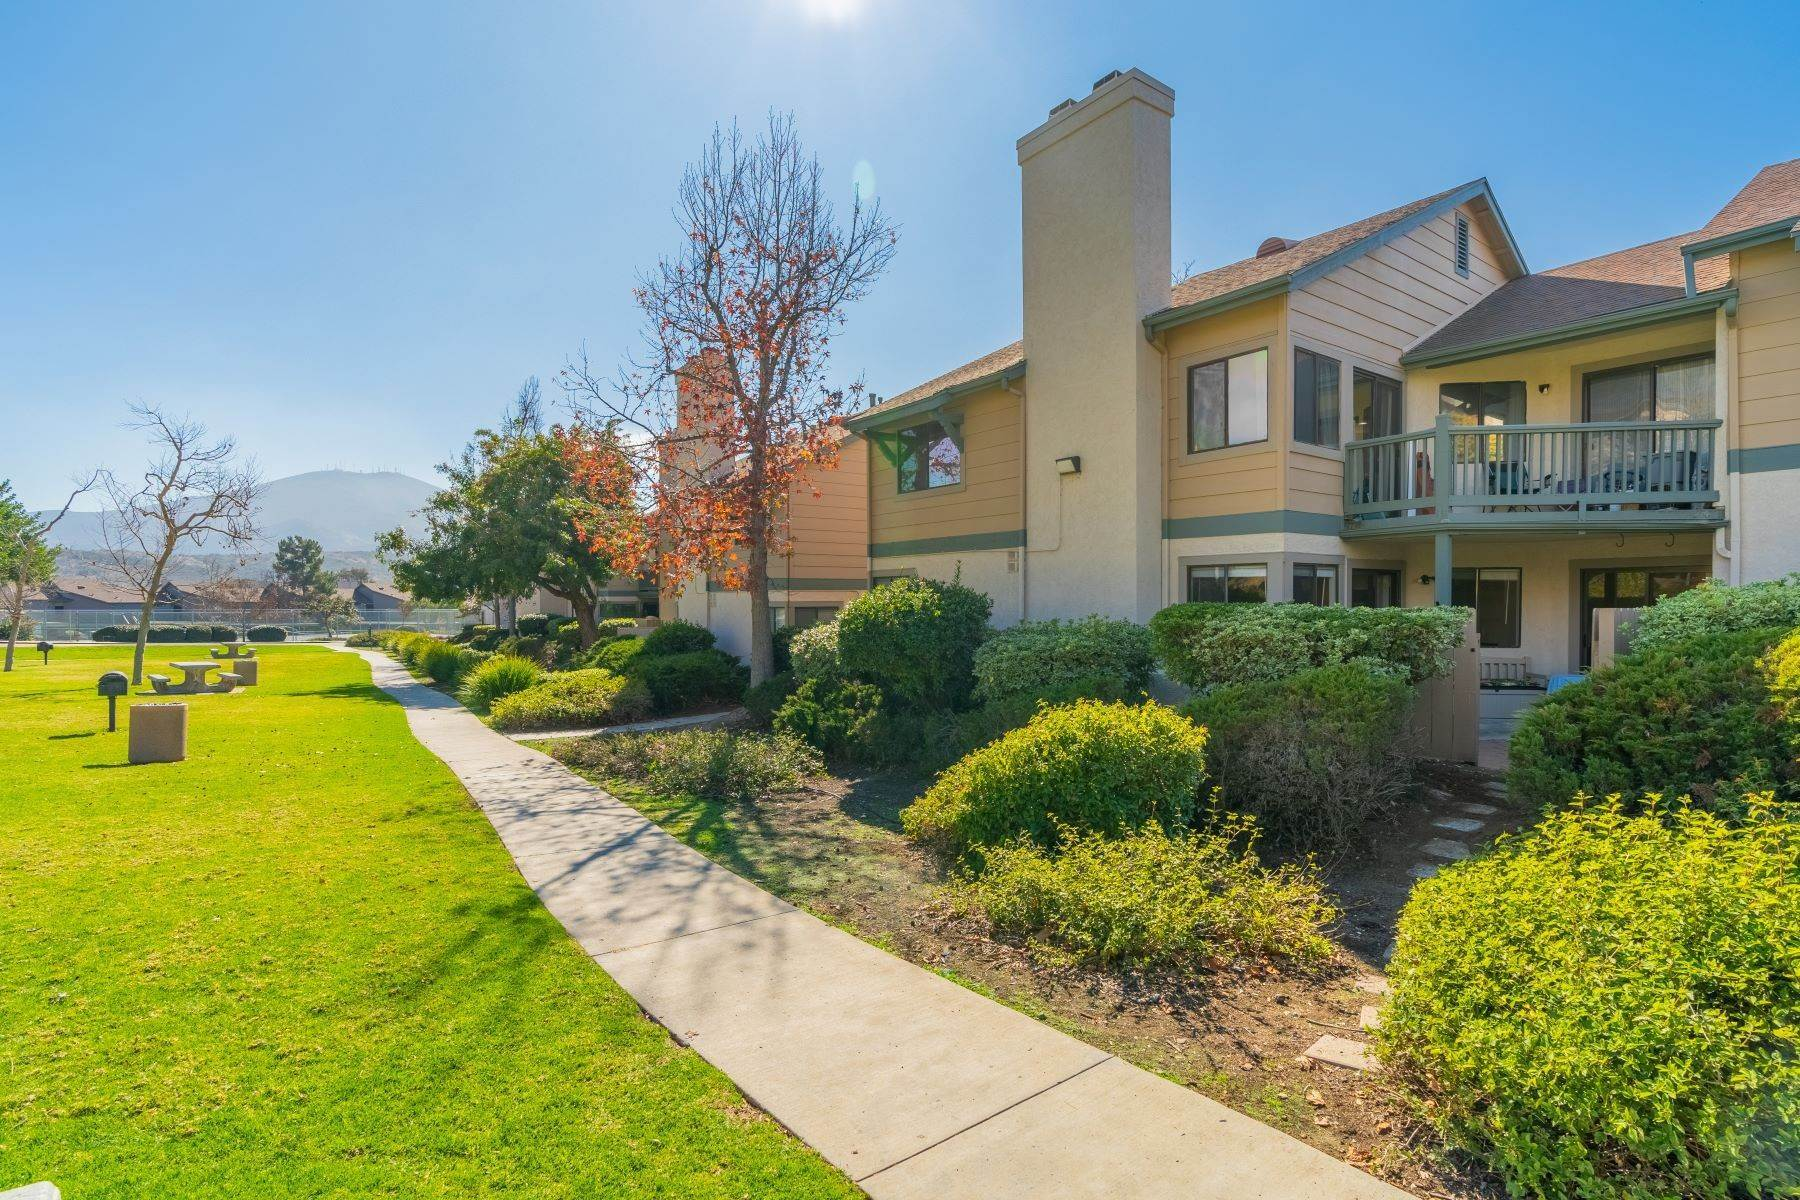 Condominiums for Sale at 3044 Charwood Court, Spring Valley, CA 91978 3044 Charwood Court Spring Valley, California 91978 United States